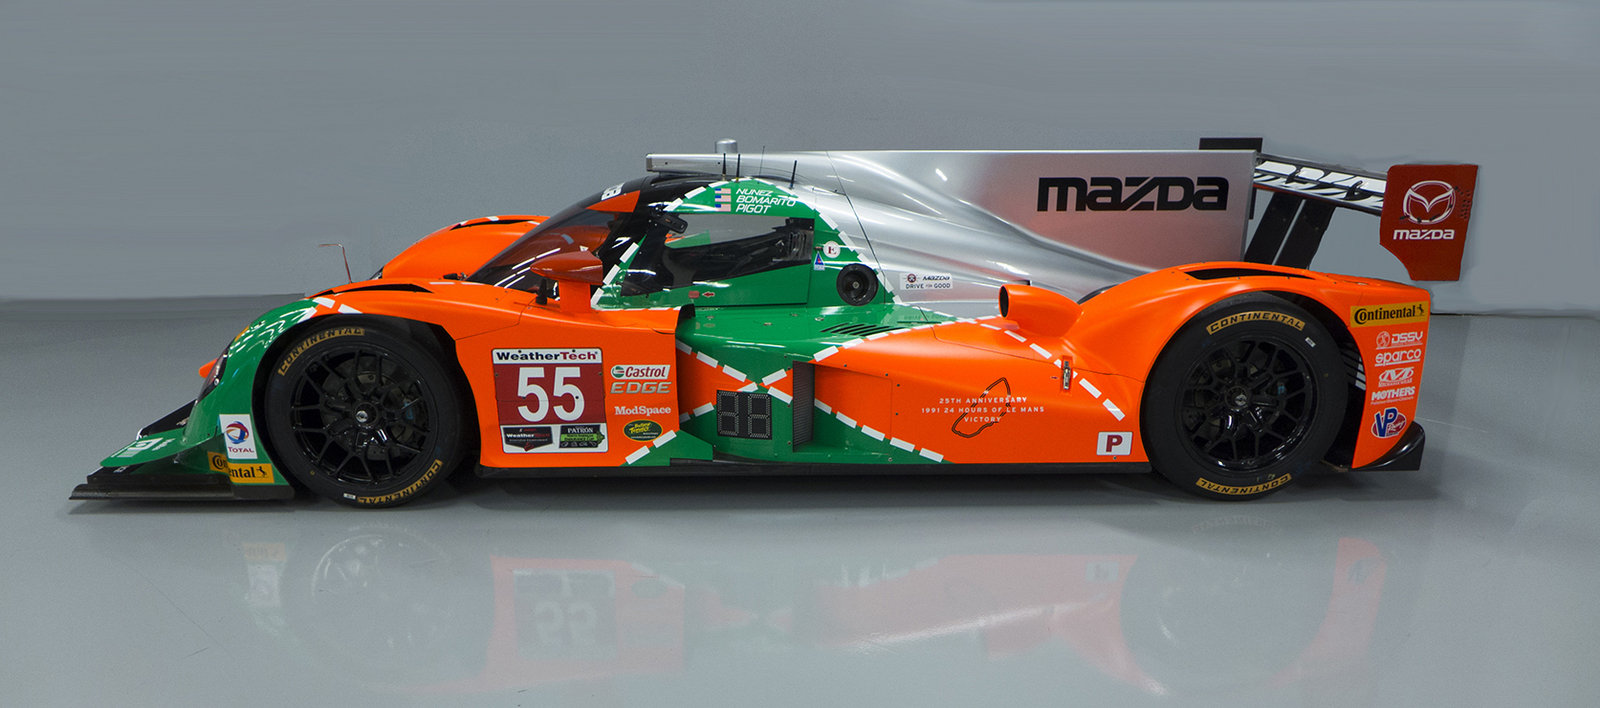 mazda pays tribute to 1991 le mans win with 787b inspired livery picture 681439 car news. Black Bedroom Furniture Sets. Home Design Ideas